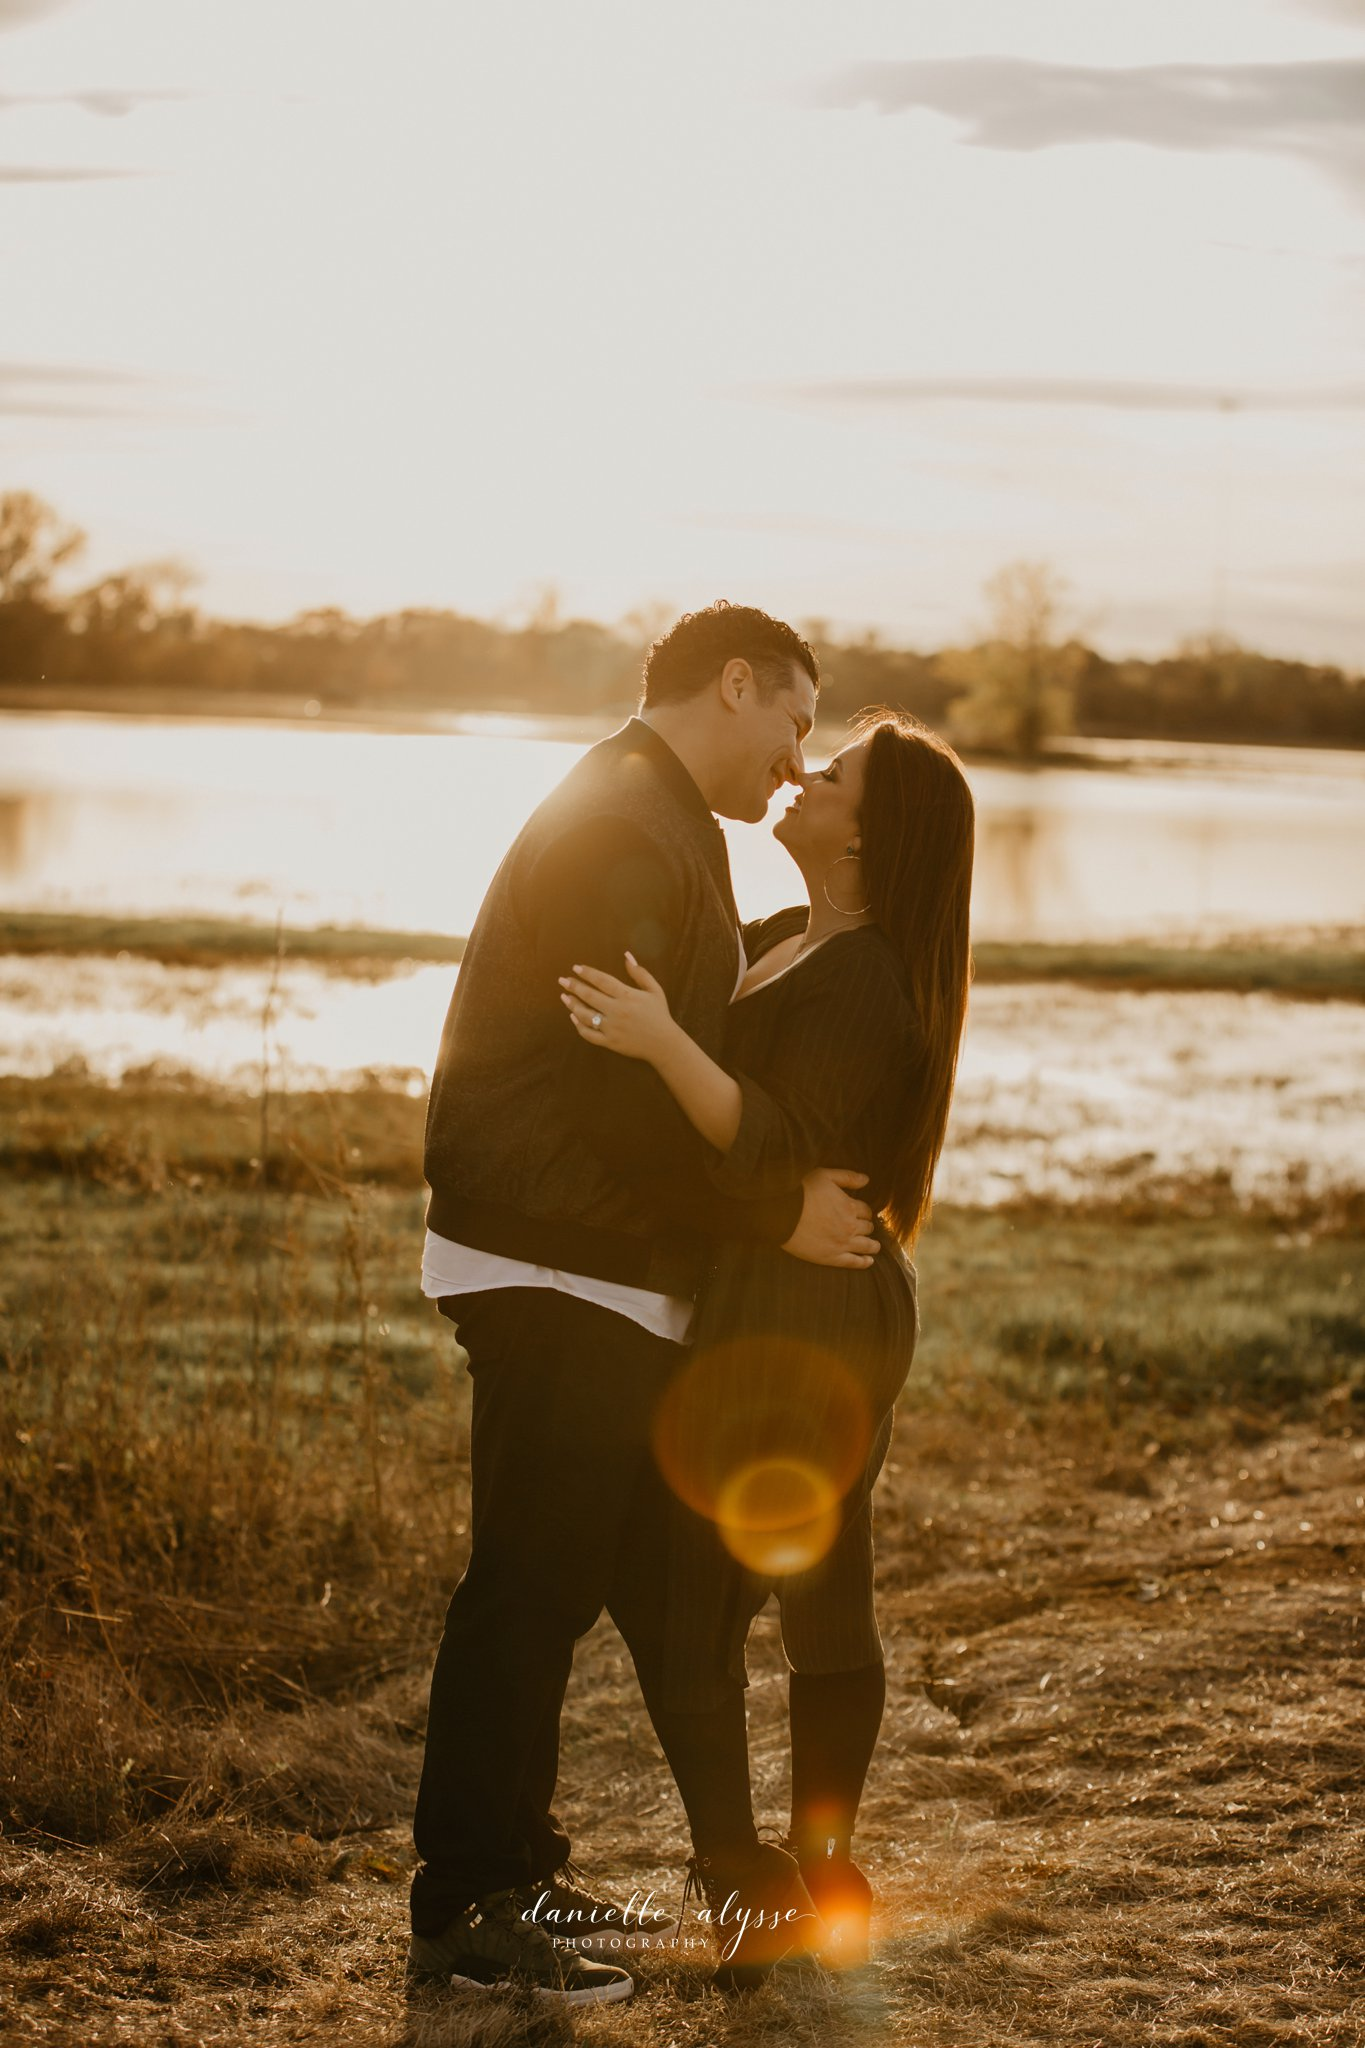 181125_fall_family_portrait_cosumnes_river_preserve_brittney_danielle_alysse_photography_27_WEB.jpg